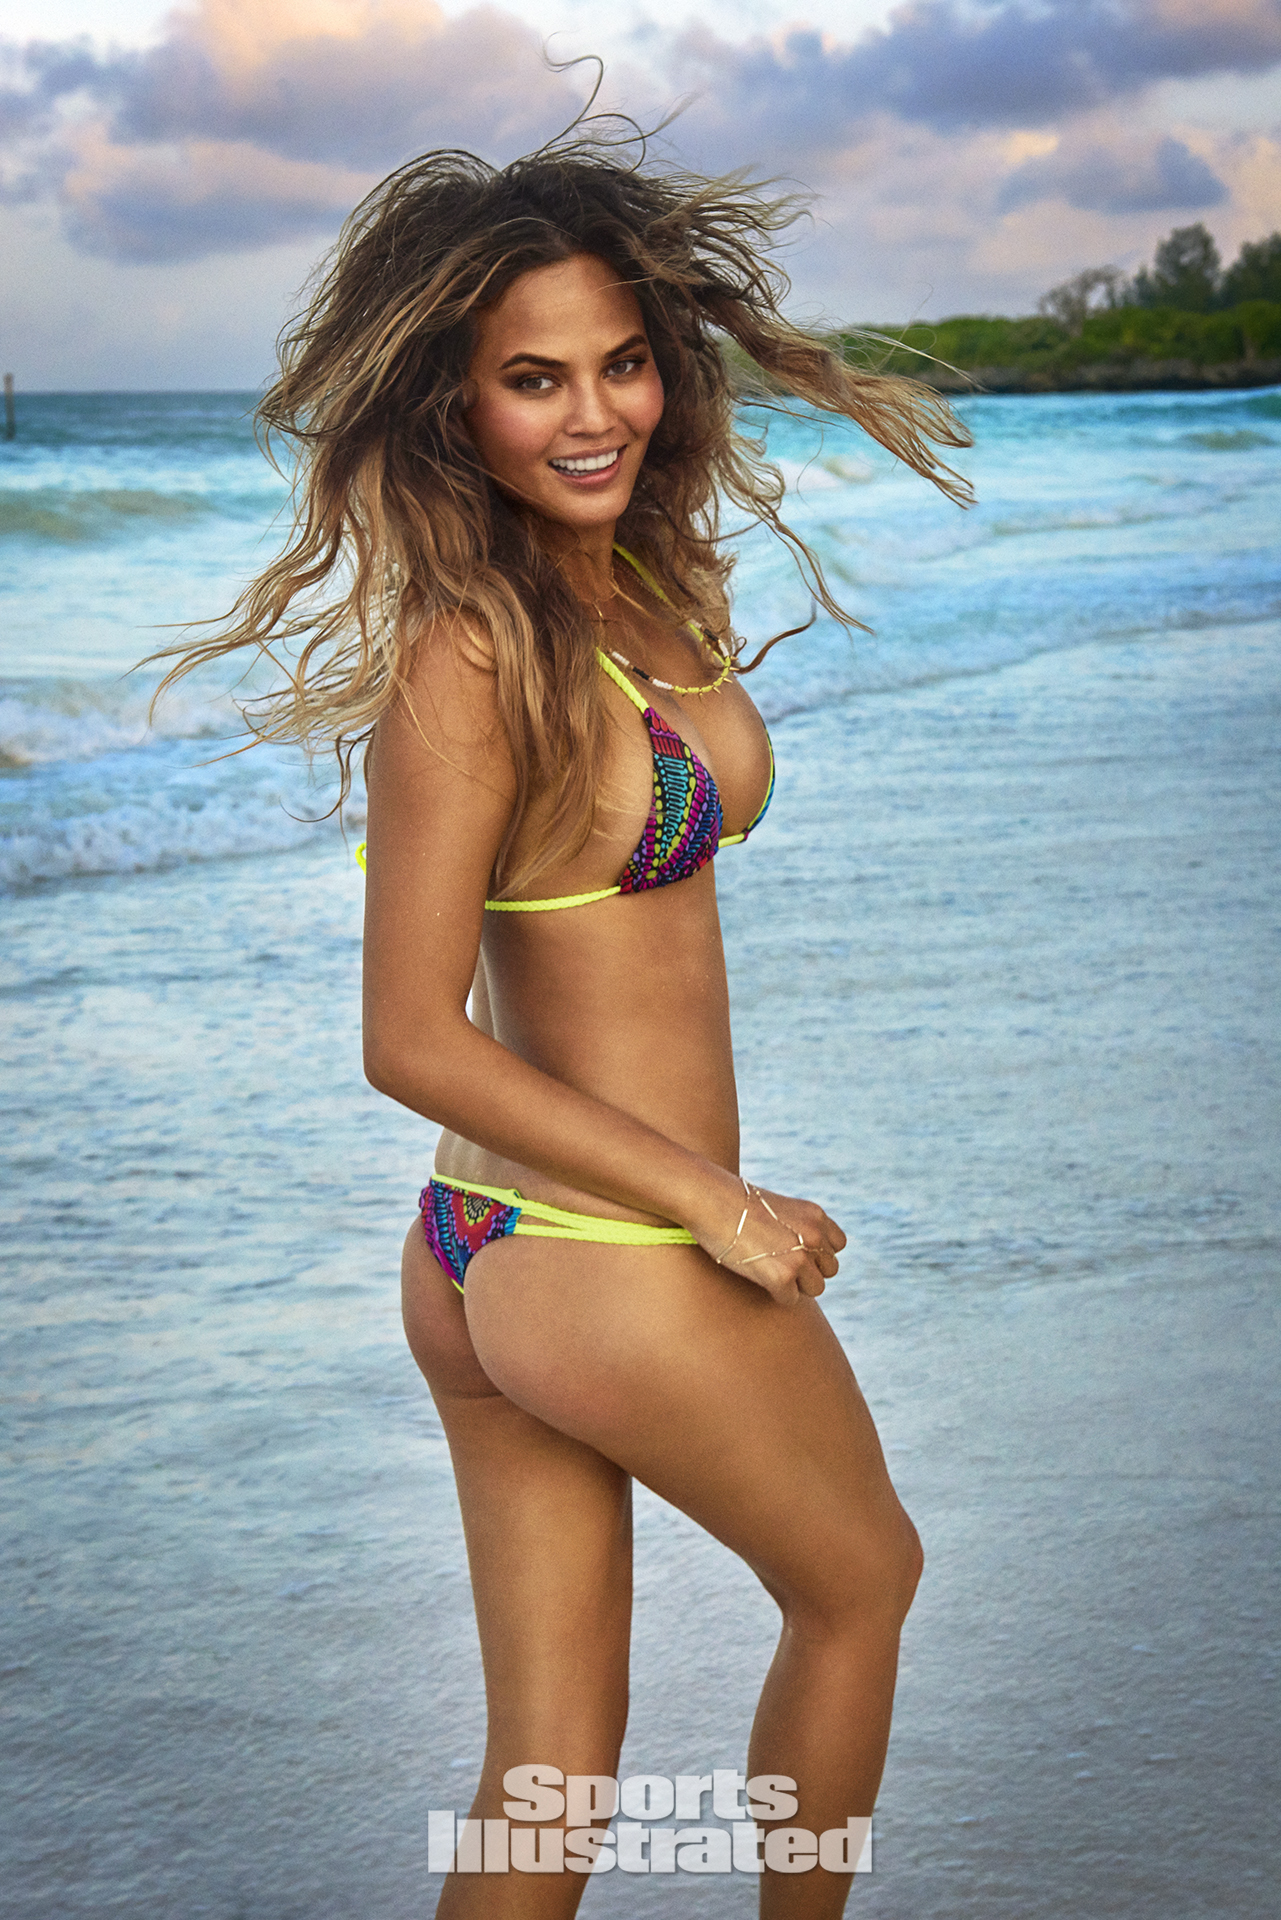 Chrissy Teigen was photographed by Ruven Afanador in Zanzibar.